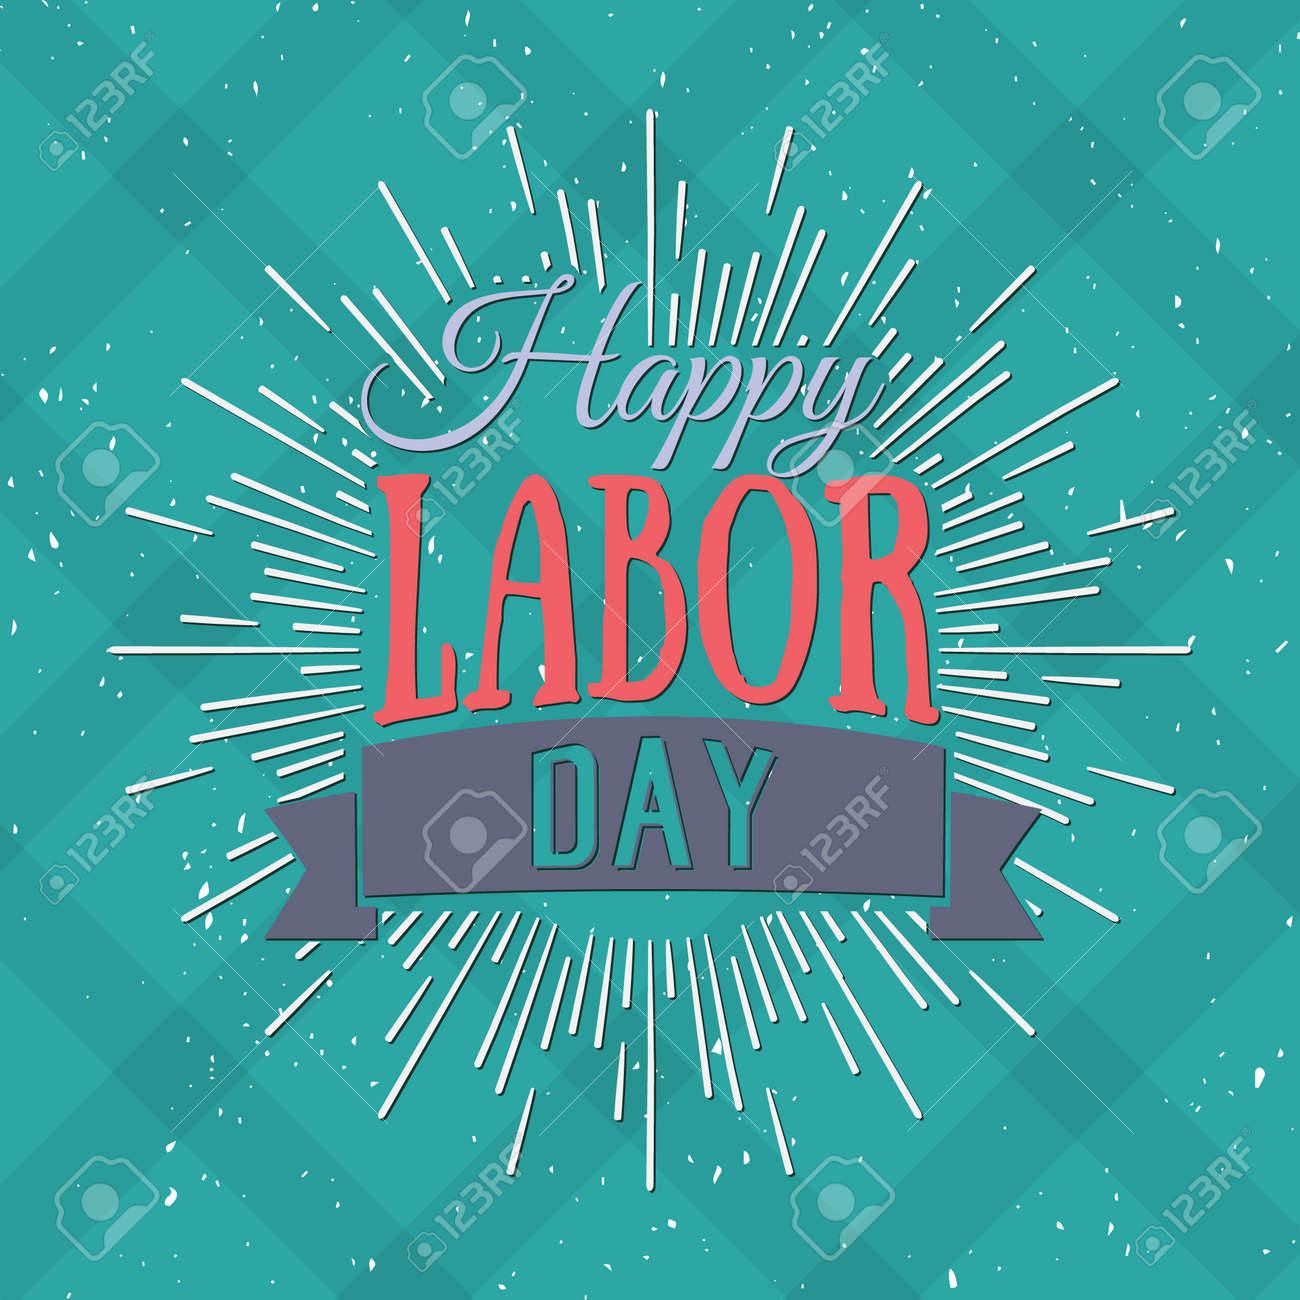 Vector Illustration Labor Day a national holiday of the United States. American Happy Labor Day design poster. - 44206755